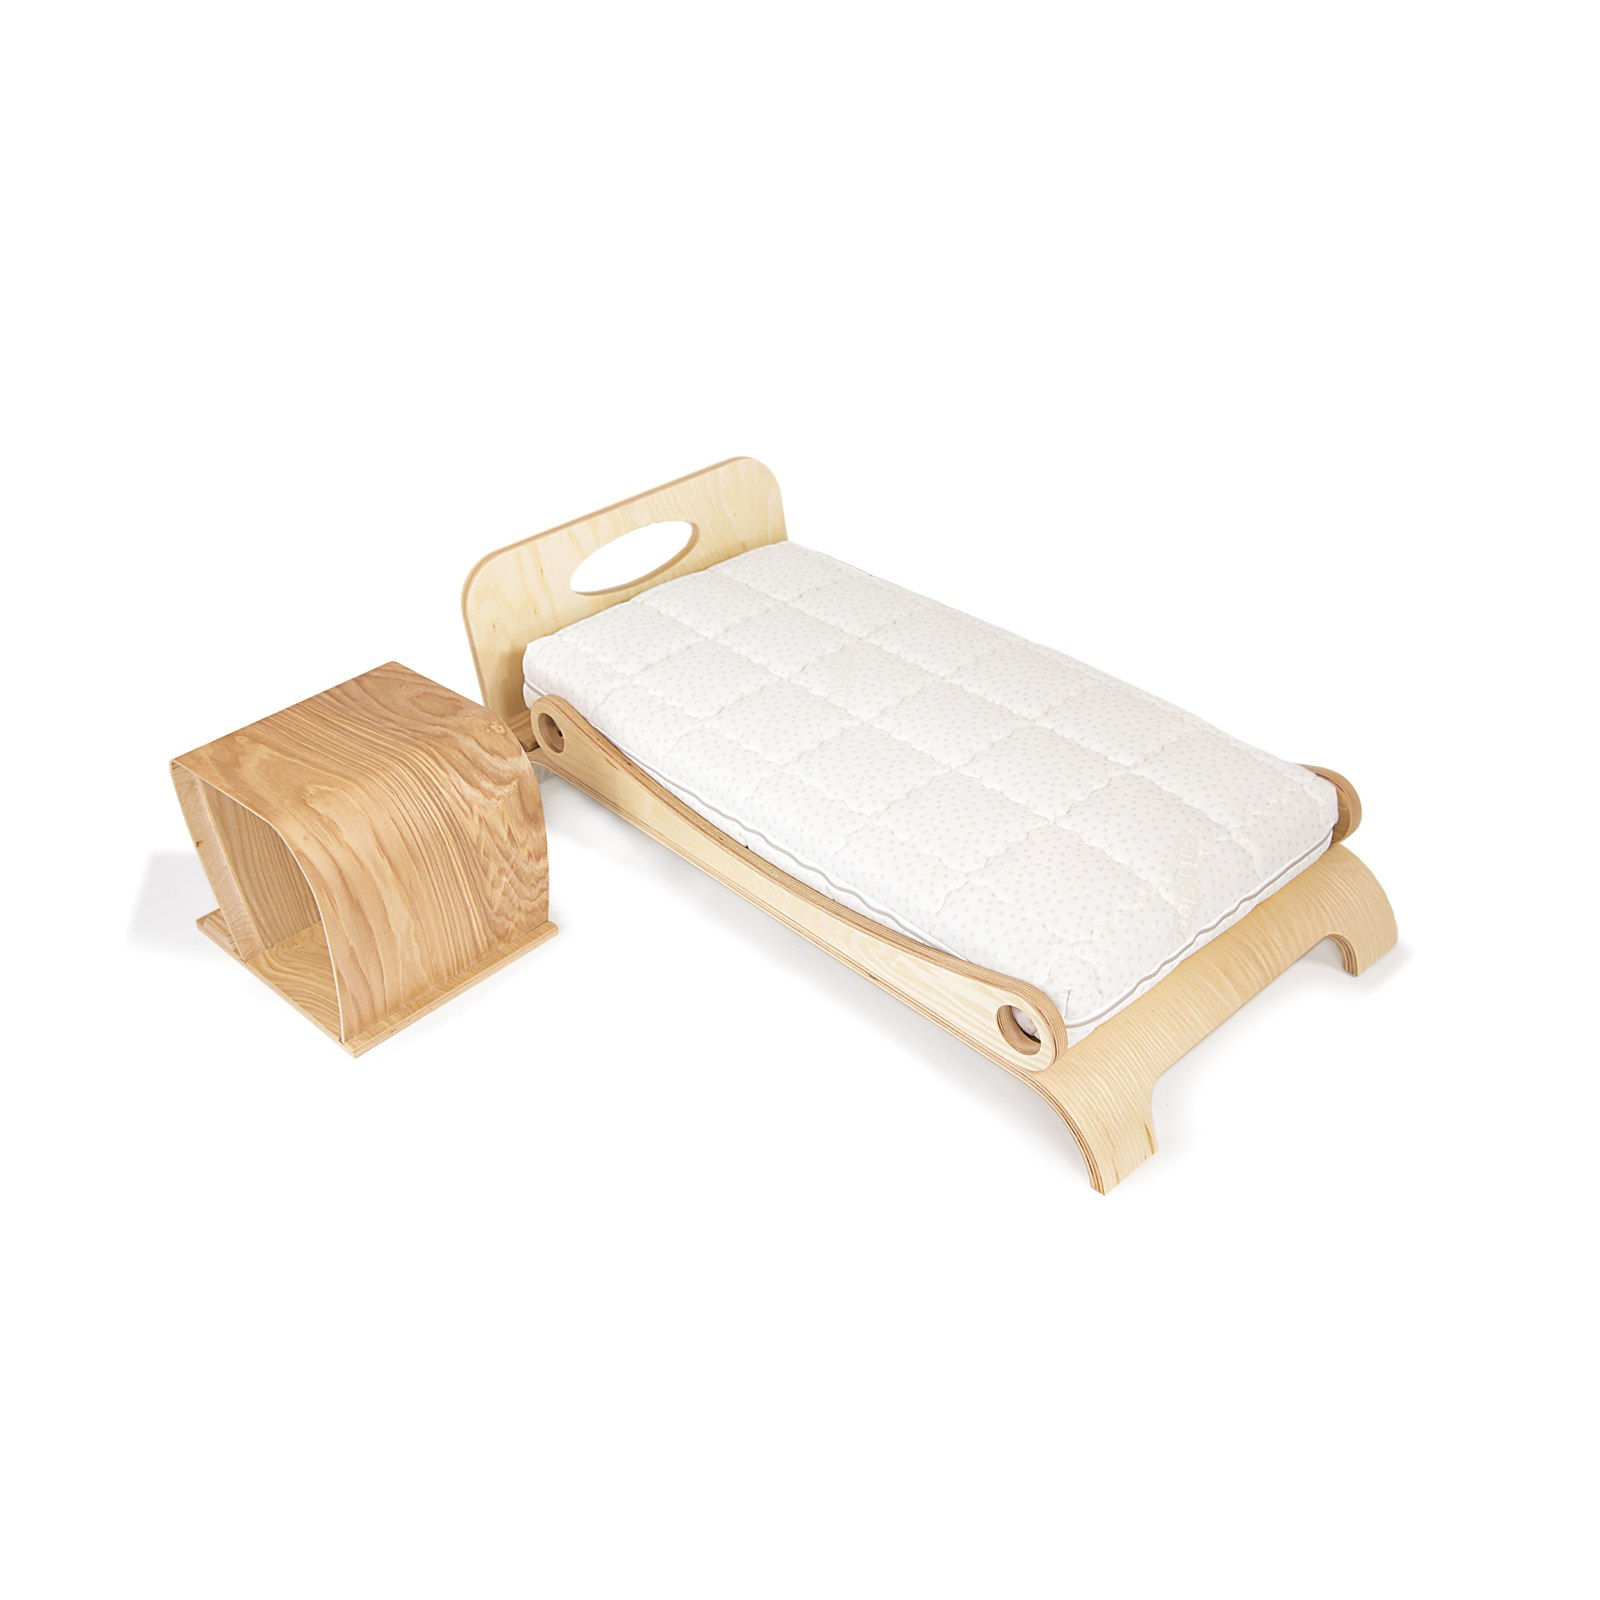 Montessori Small Bed - Flowerssori